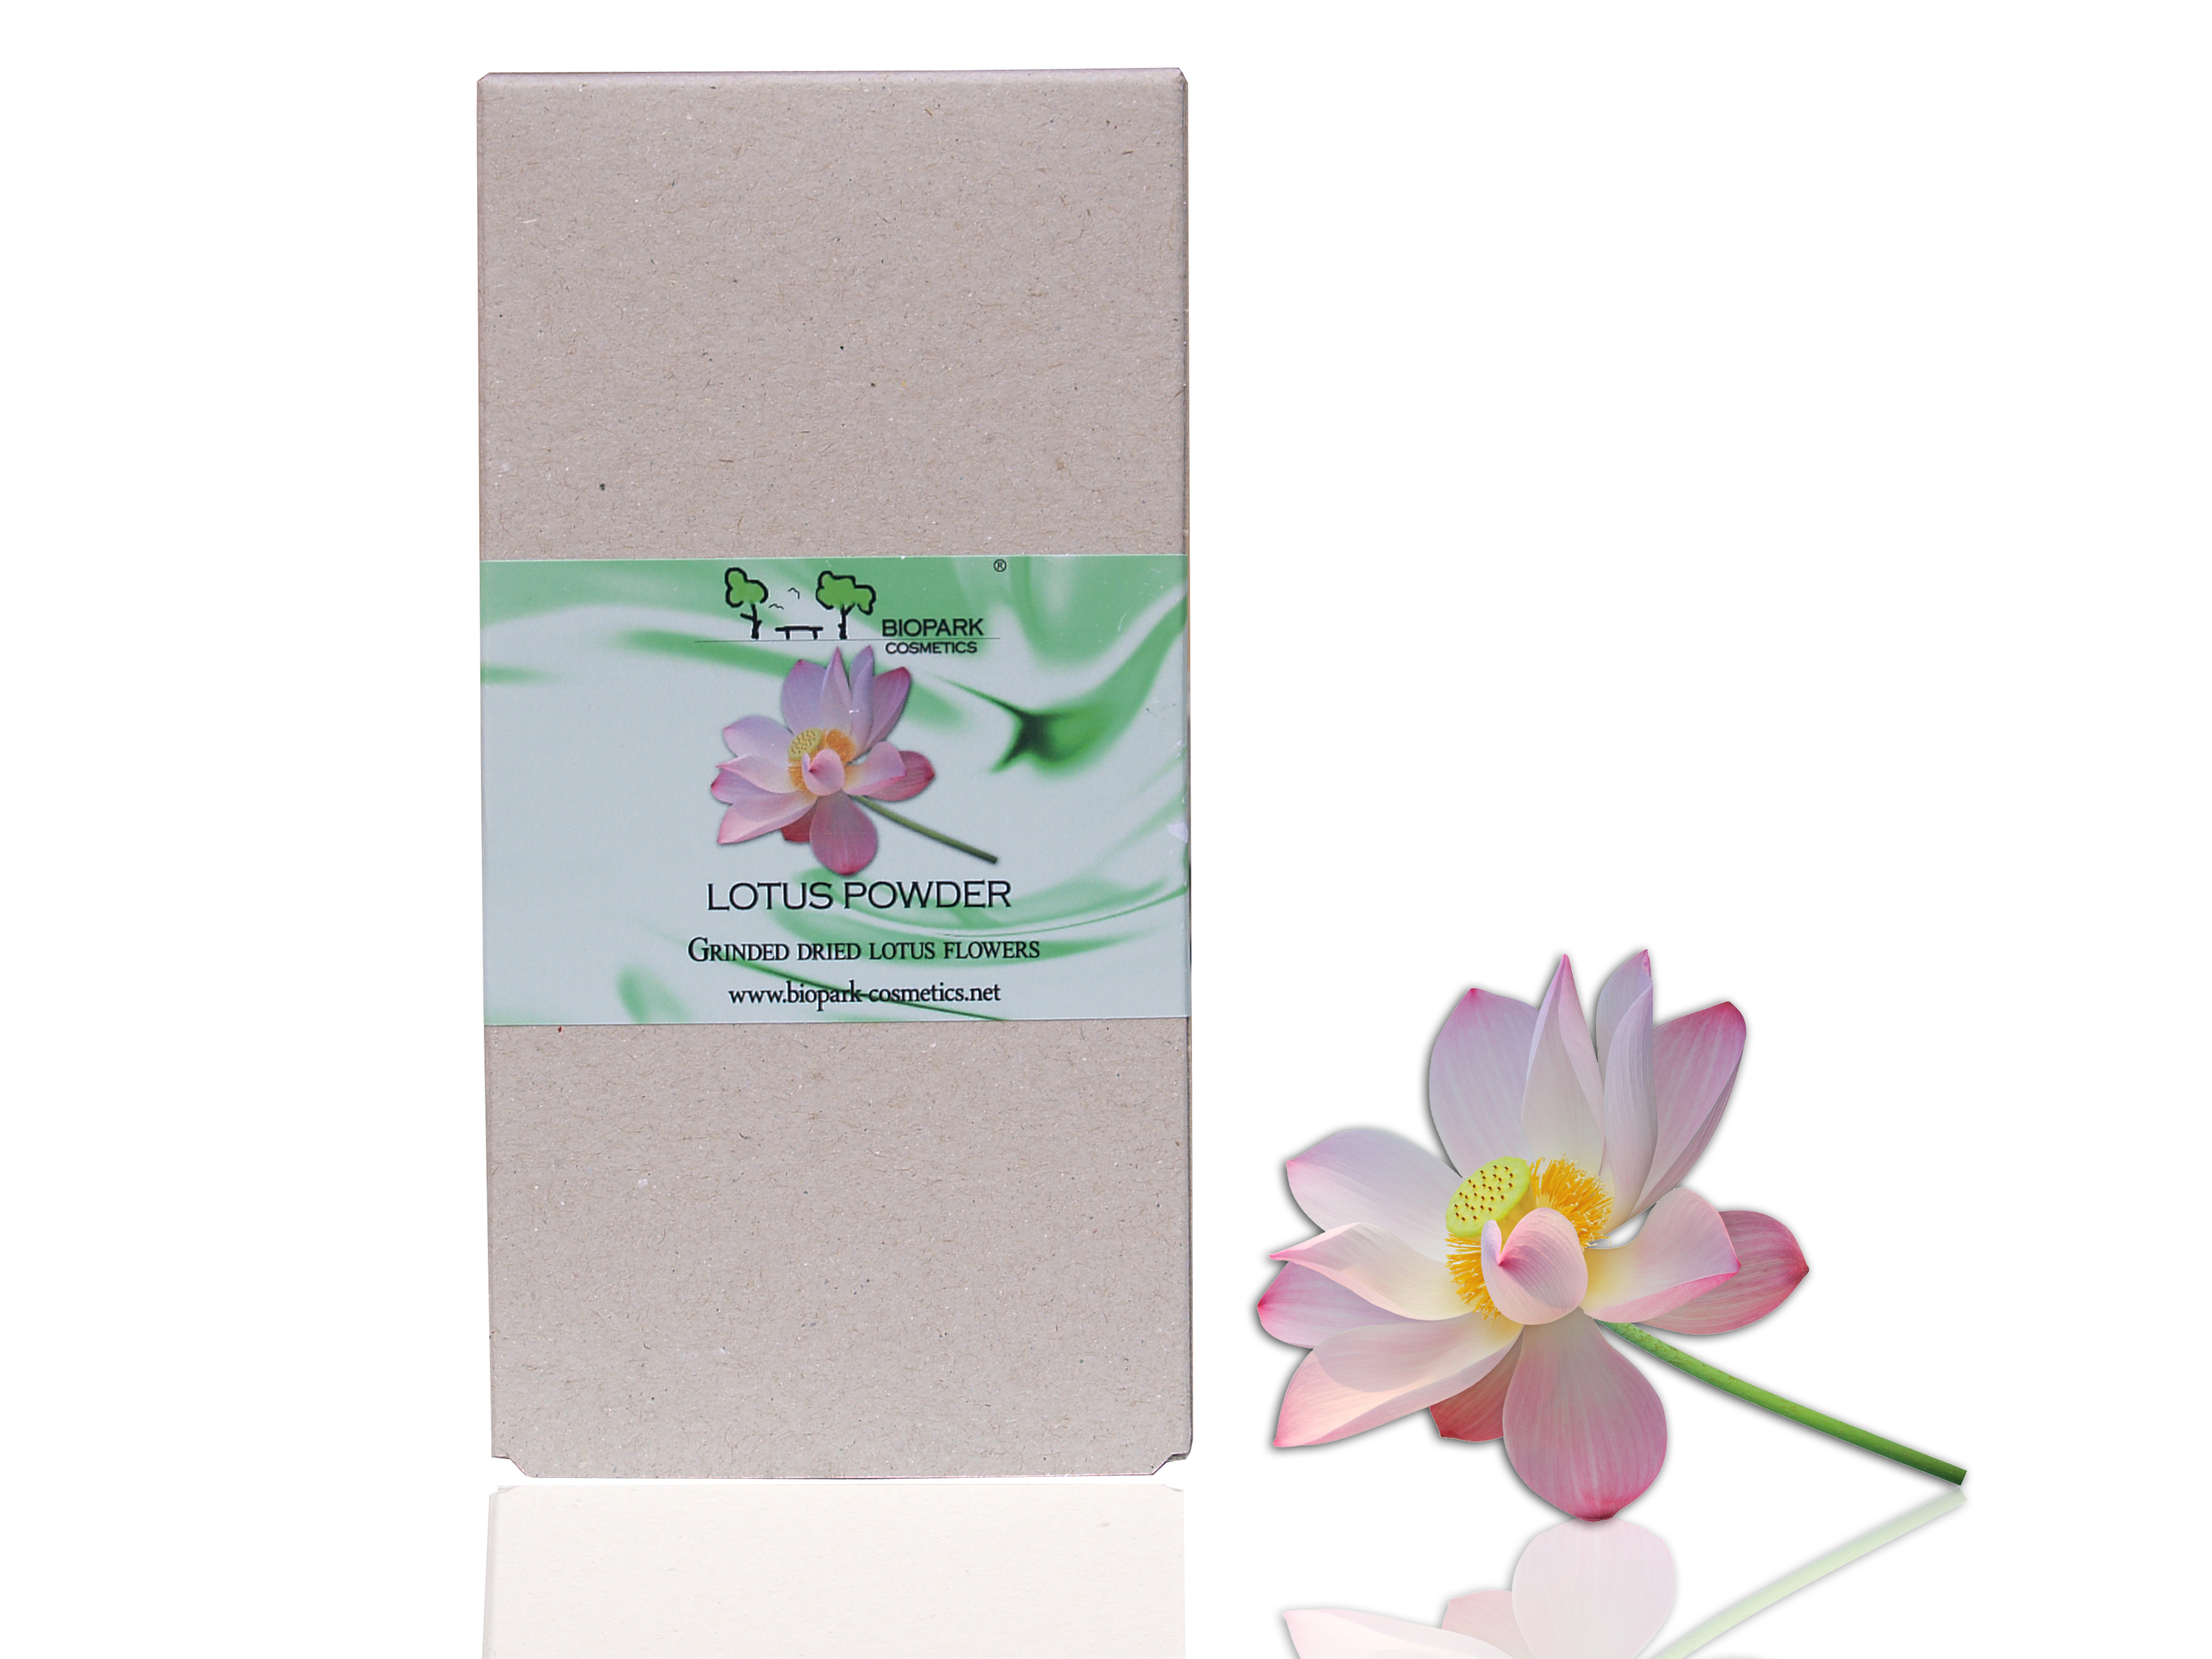 Lotus powder